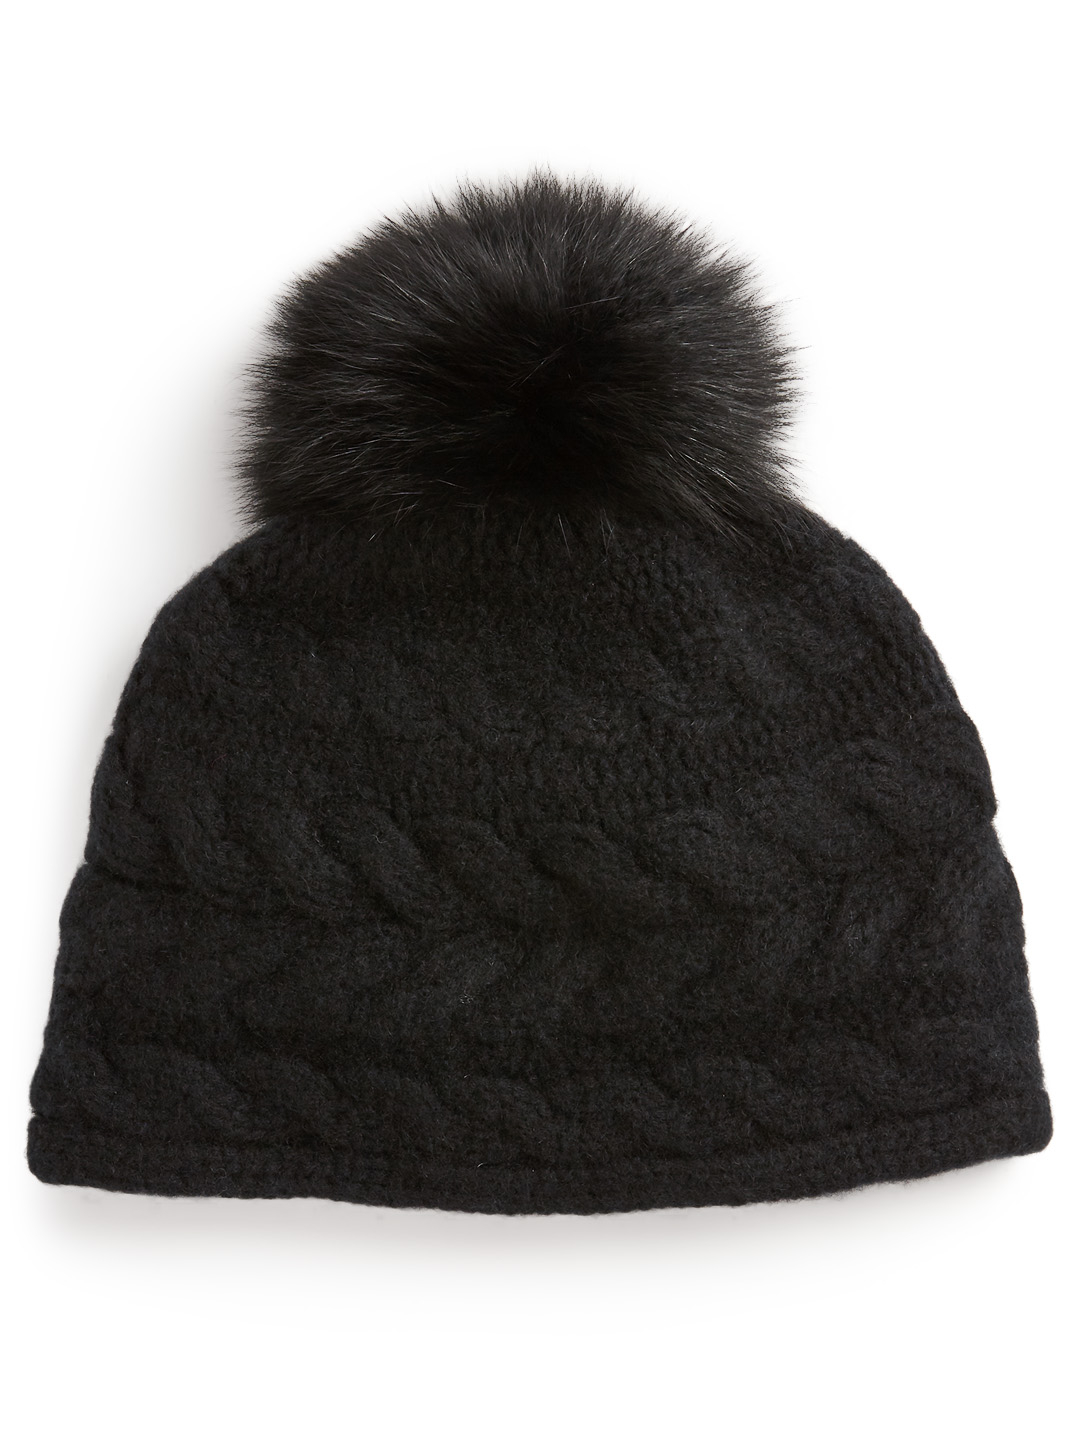 PORTOLANO Cashmere Cable Knit Toque With Fur Pom Womens Black